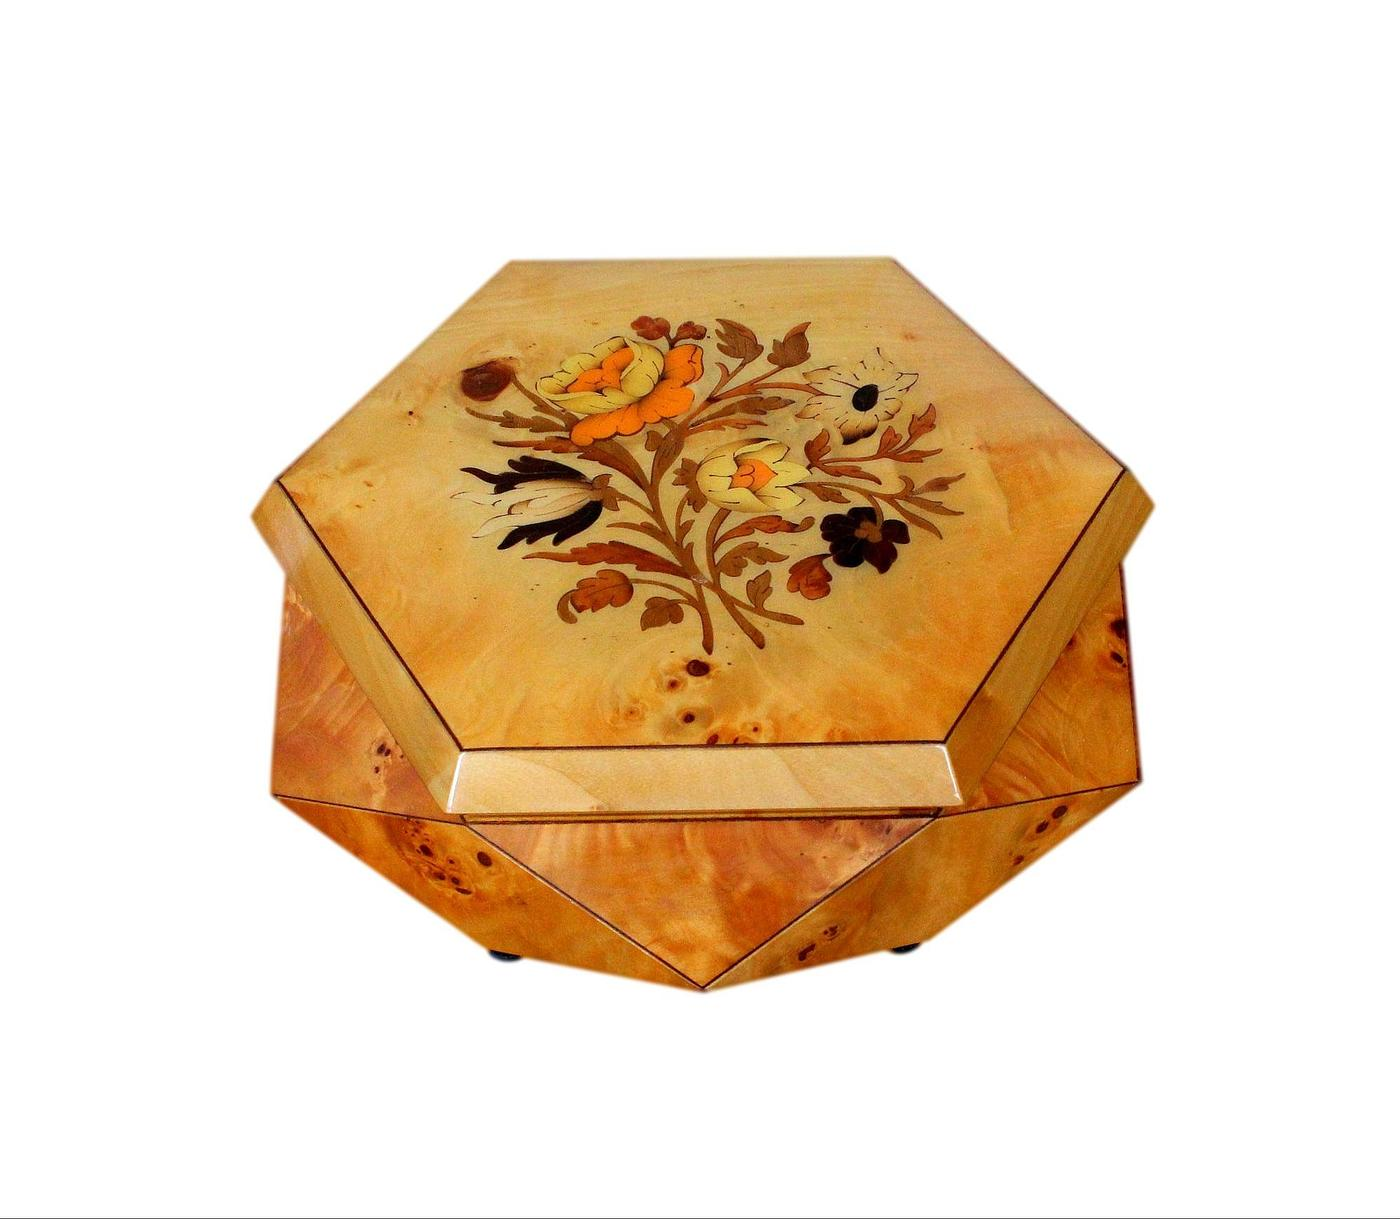 Vintage 3 Dimensional Inlaid Musical Jewellery Box